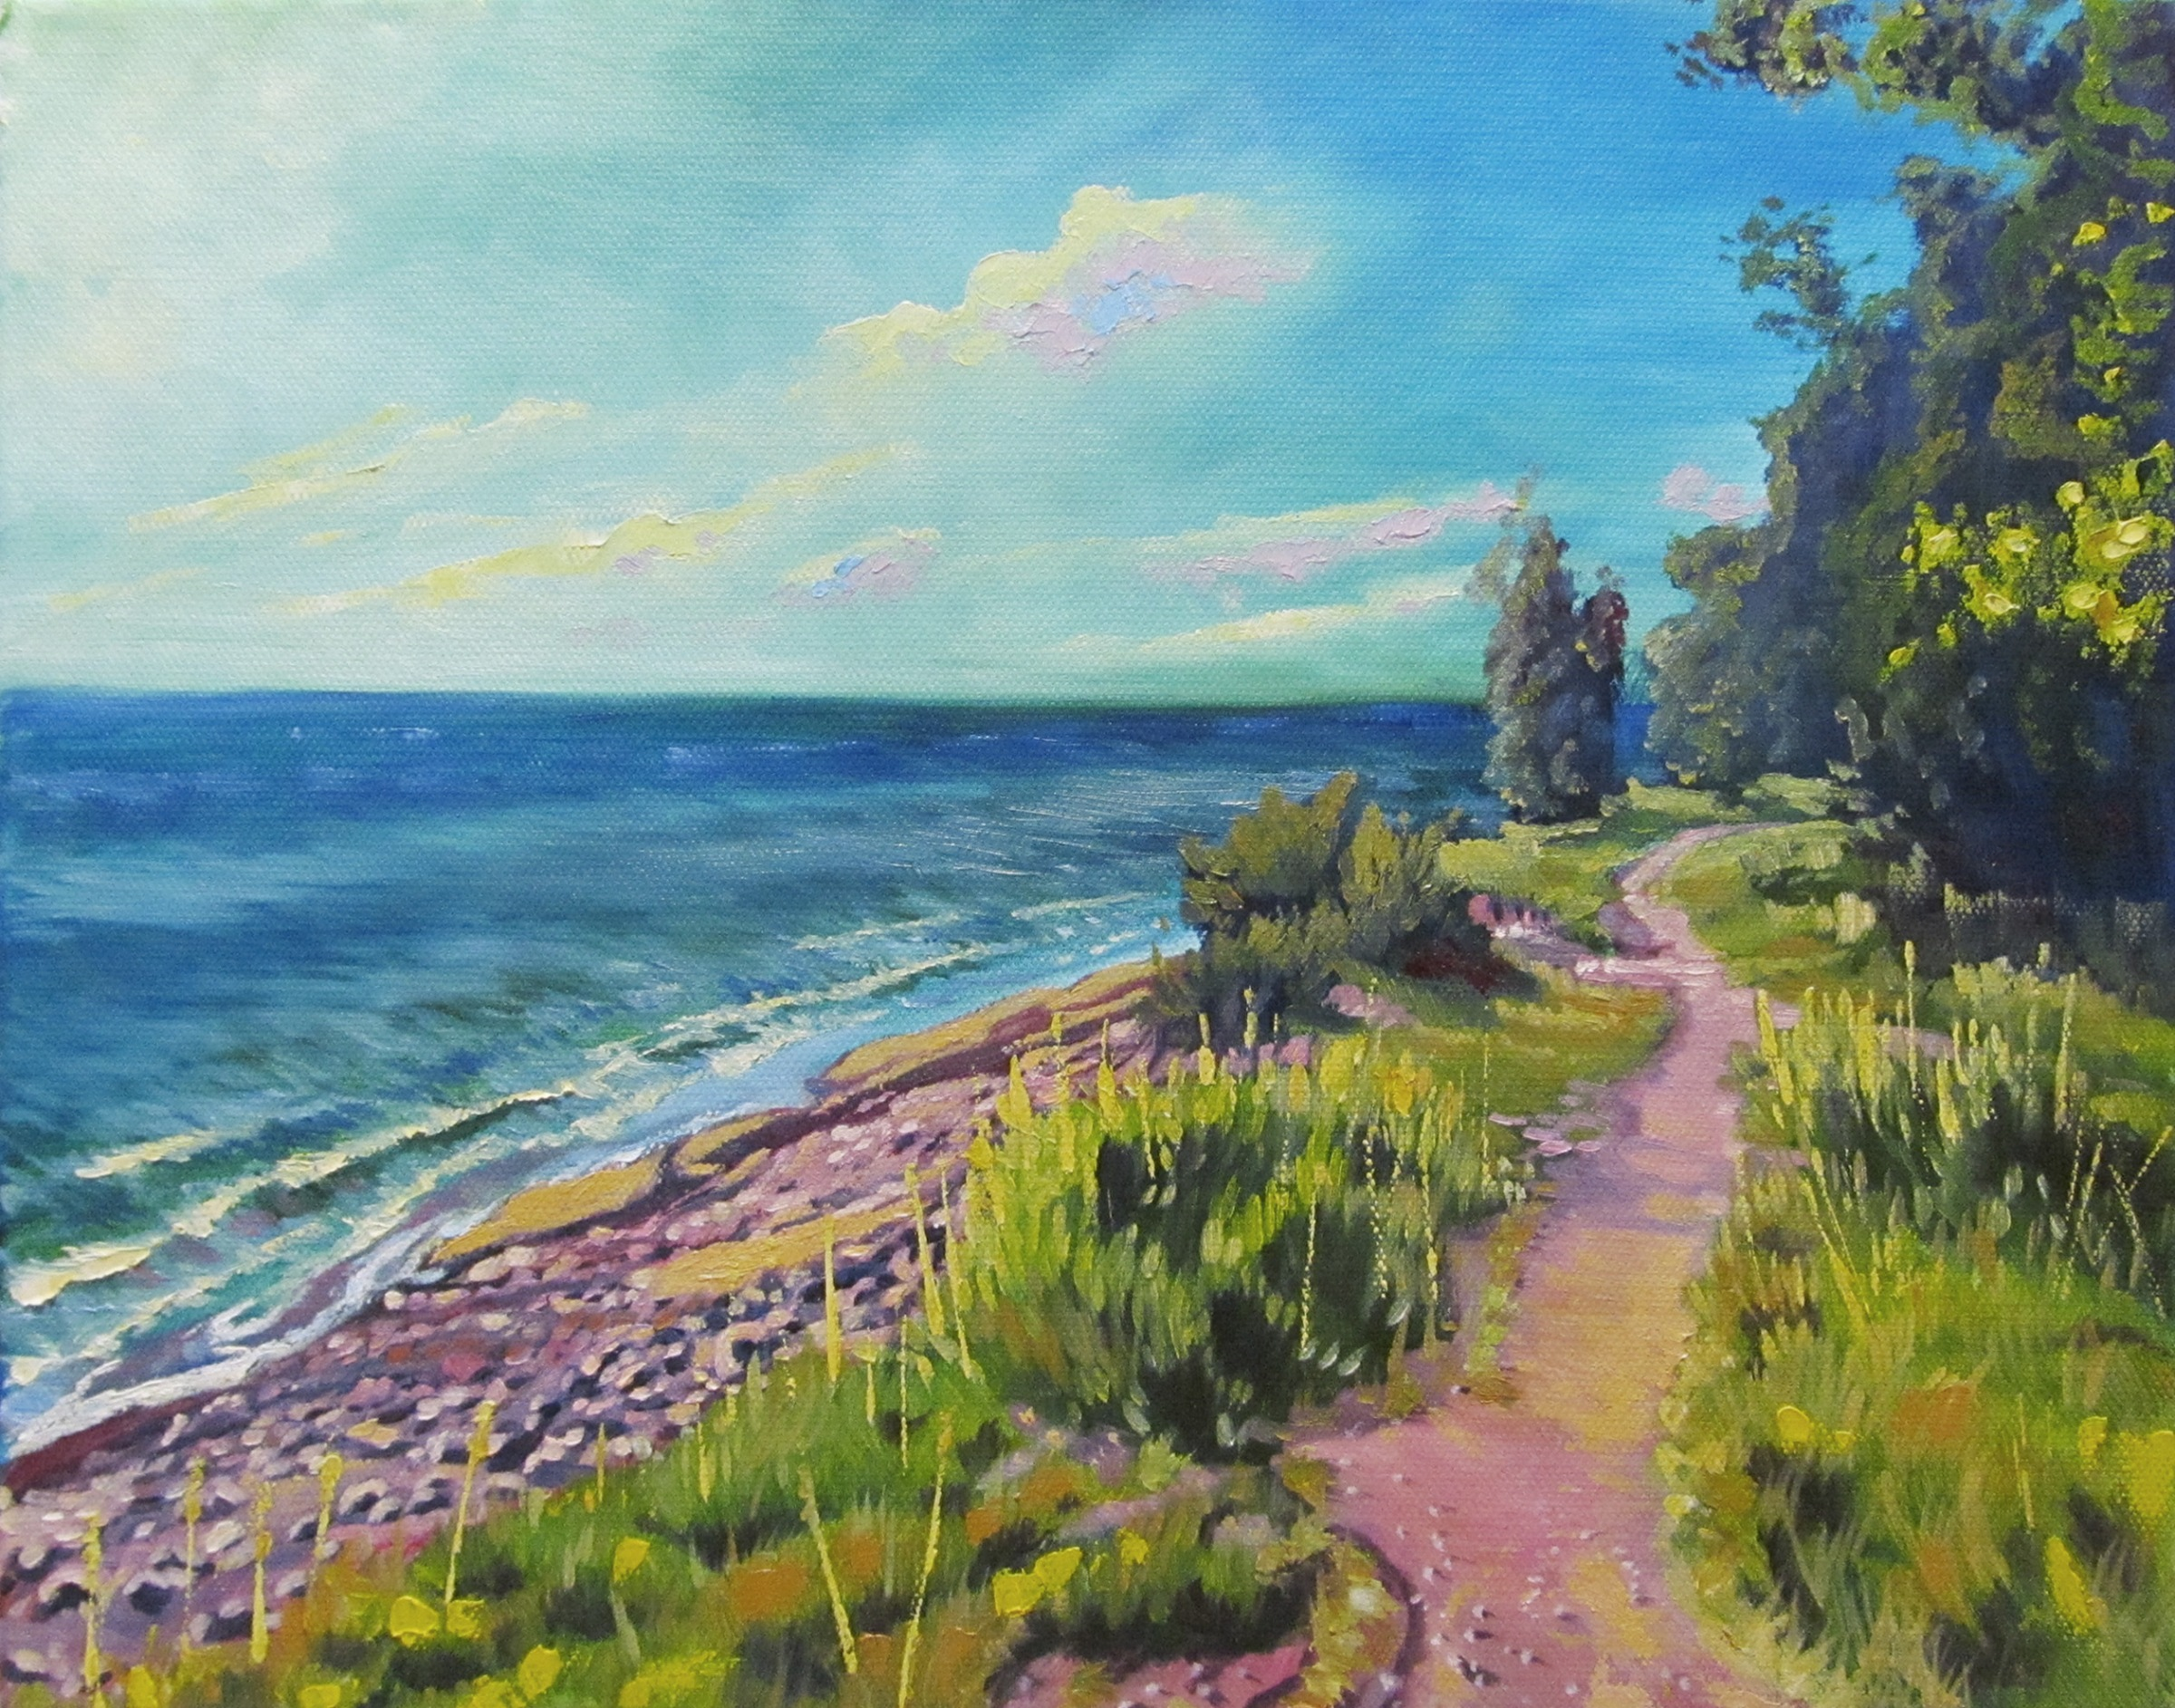 art, painting, oil painting, landscape, Lake Superior, michigan, PINK PATHWAY, 11X14 OIL ON CANVAS FOR SALE, $230